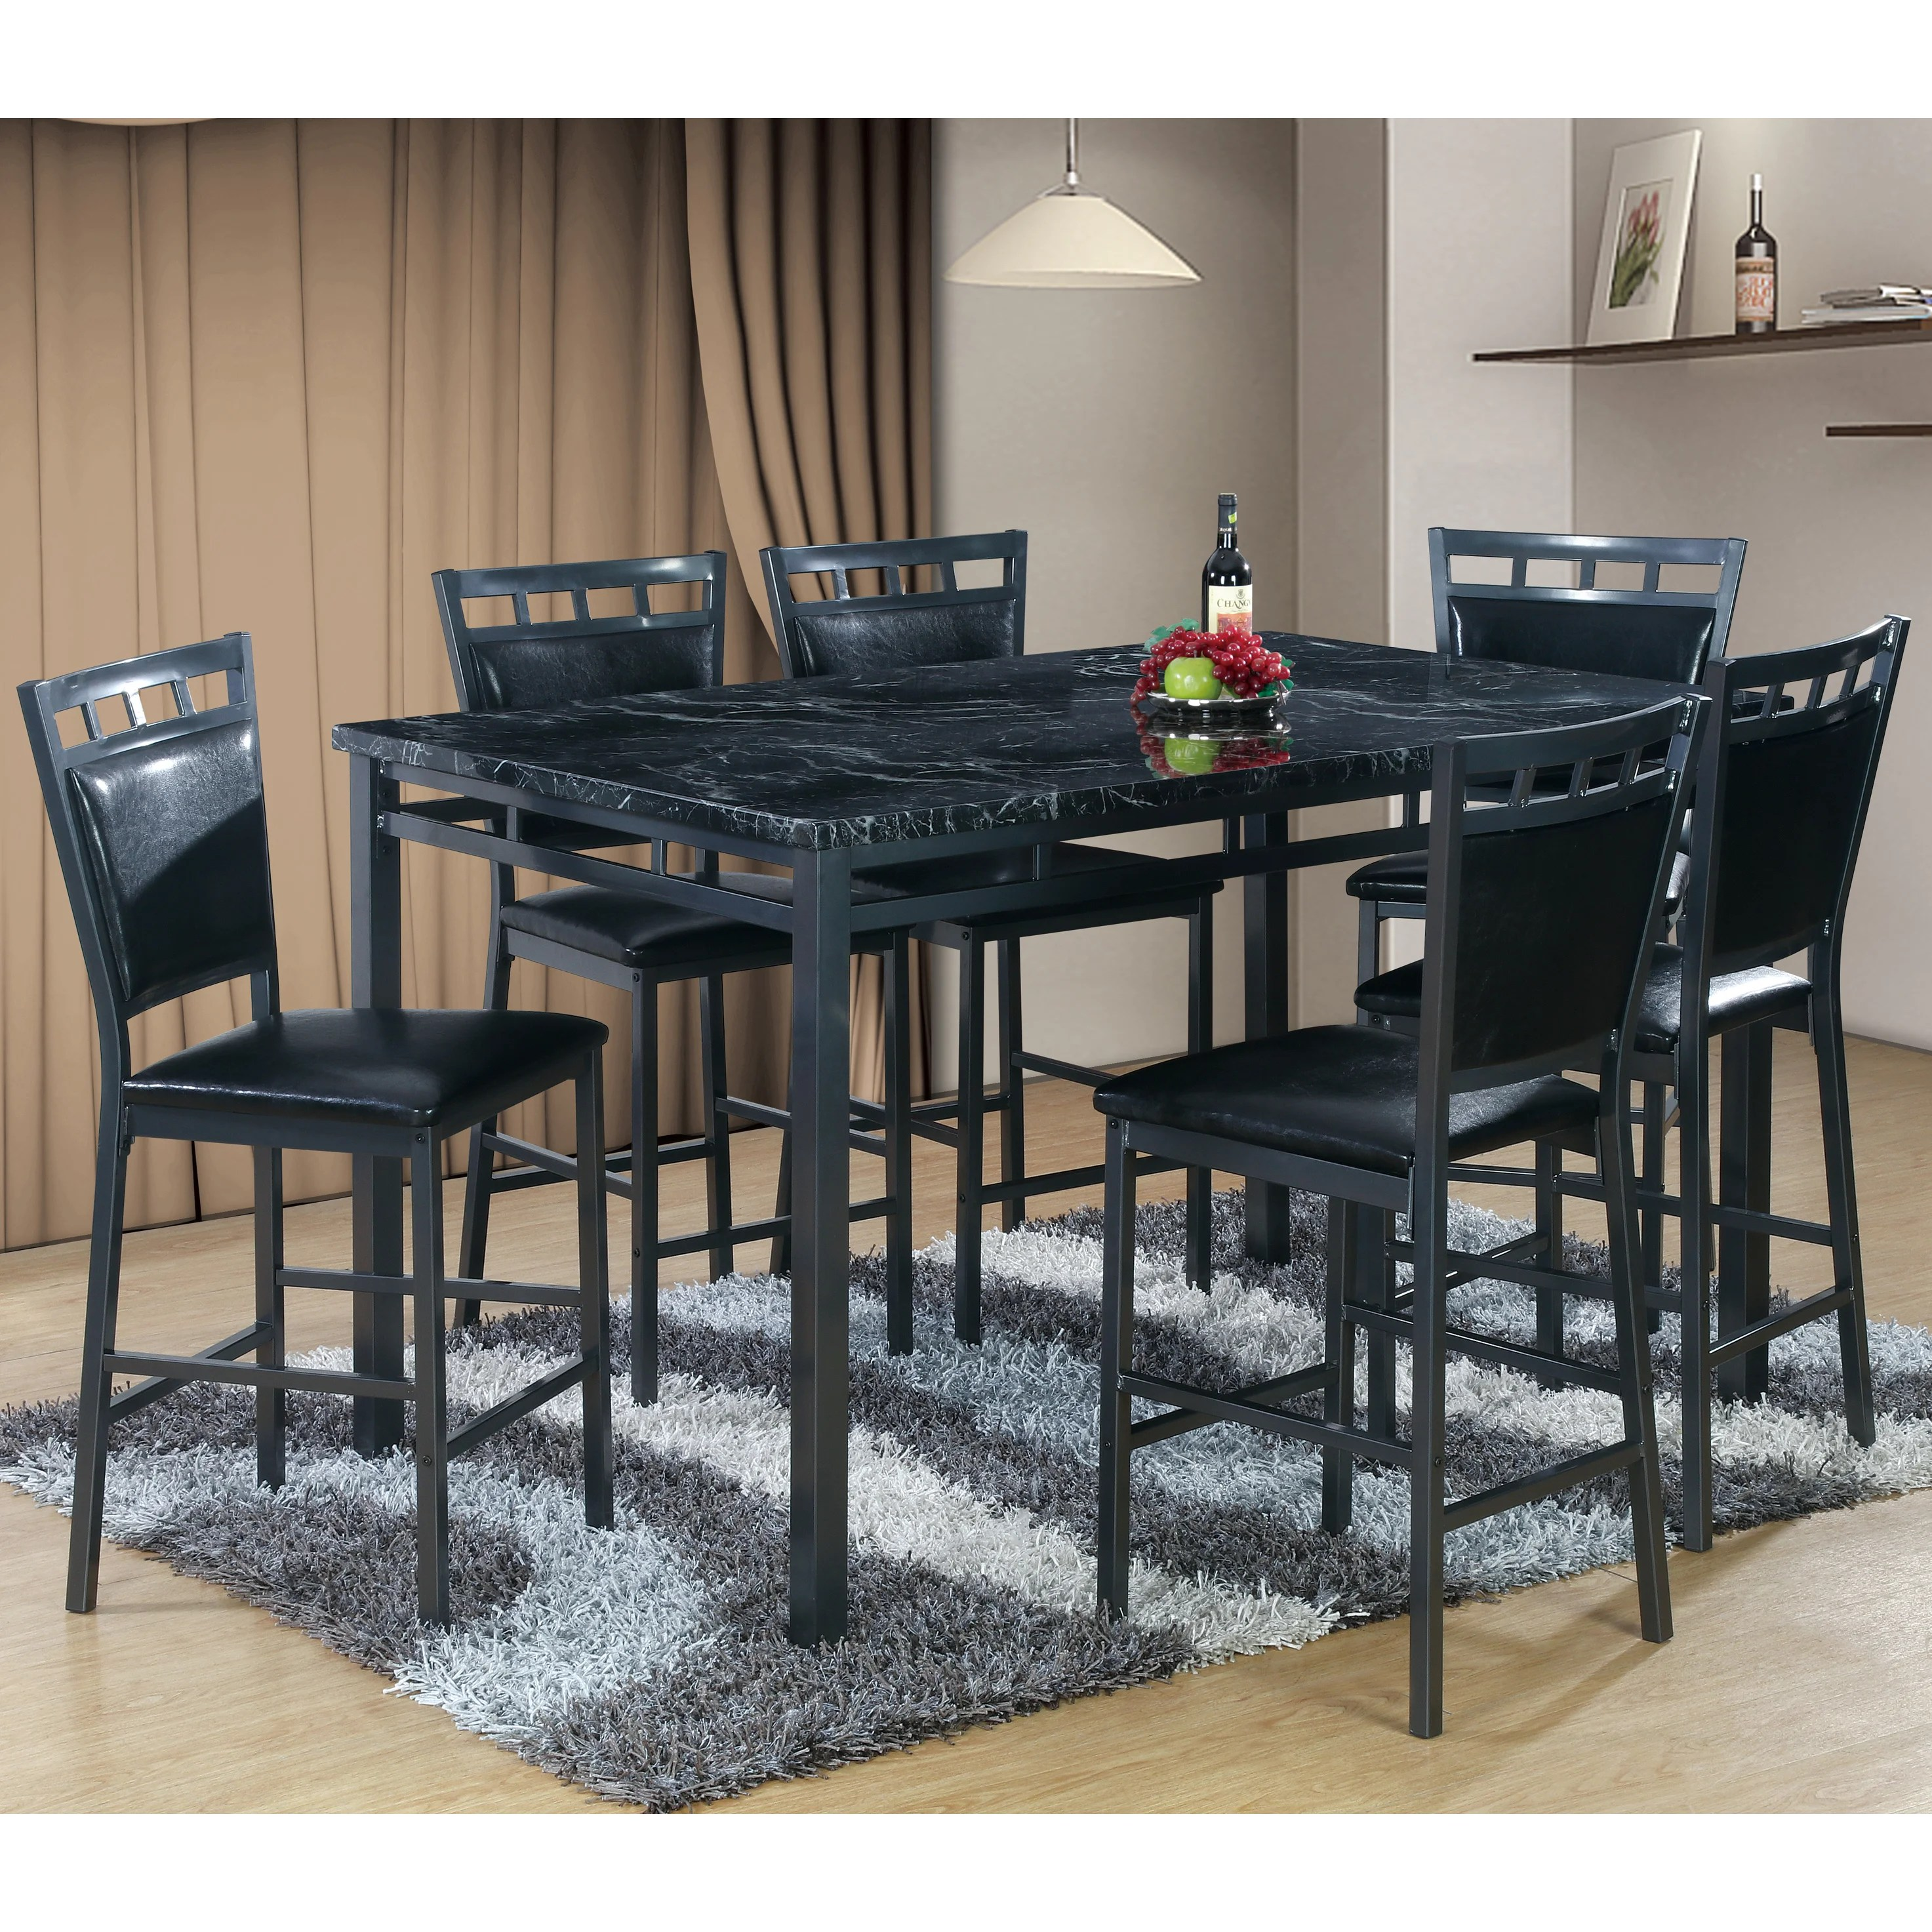 counter height dining sets c counter height kitchen table